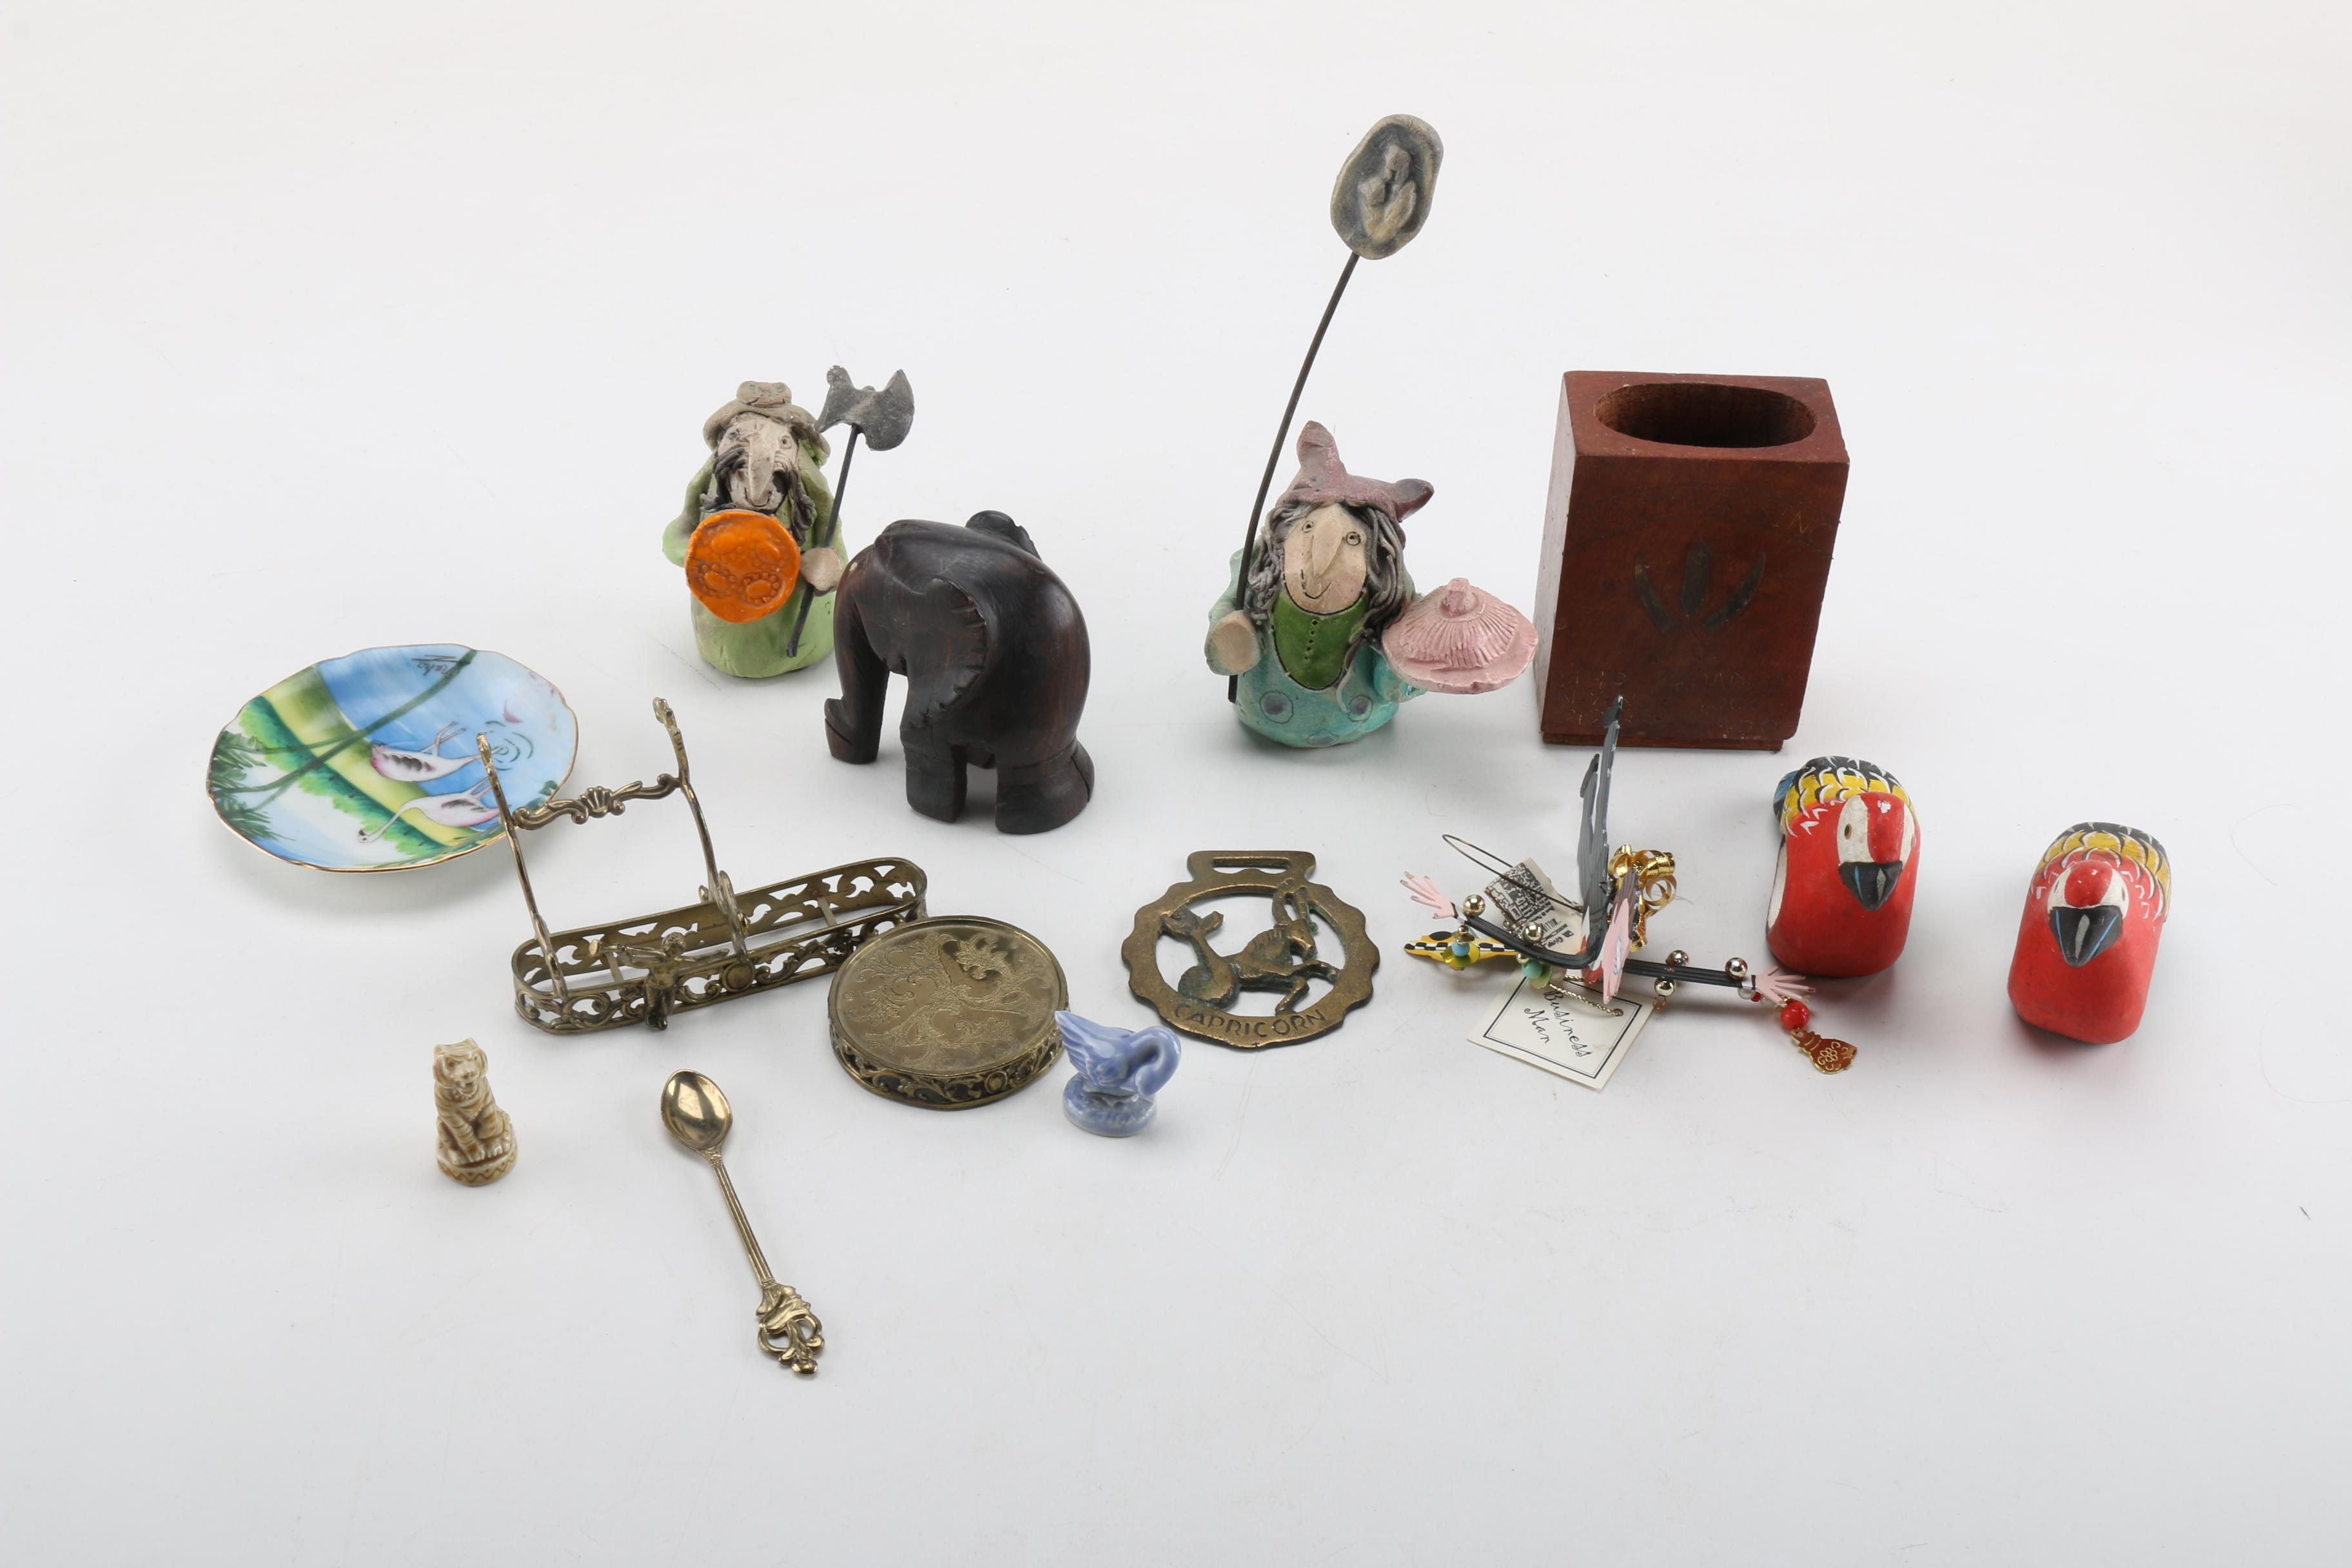 Variety of Metal, Ceramic and Wooden Figural Decor